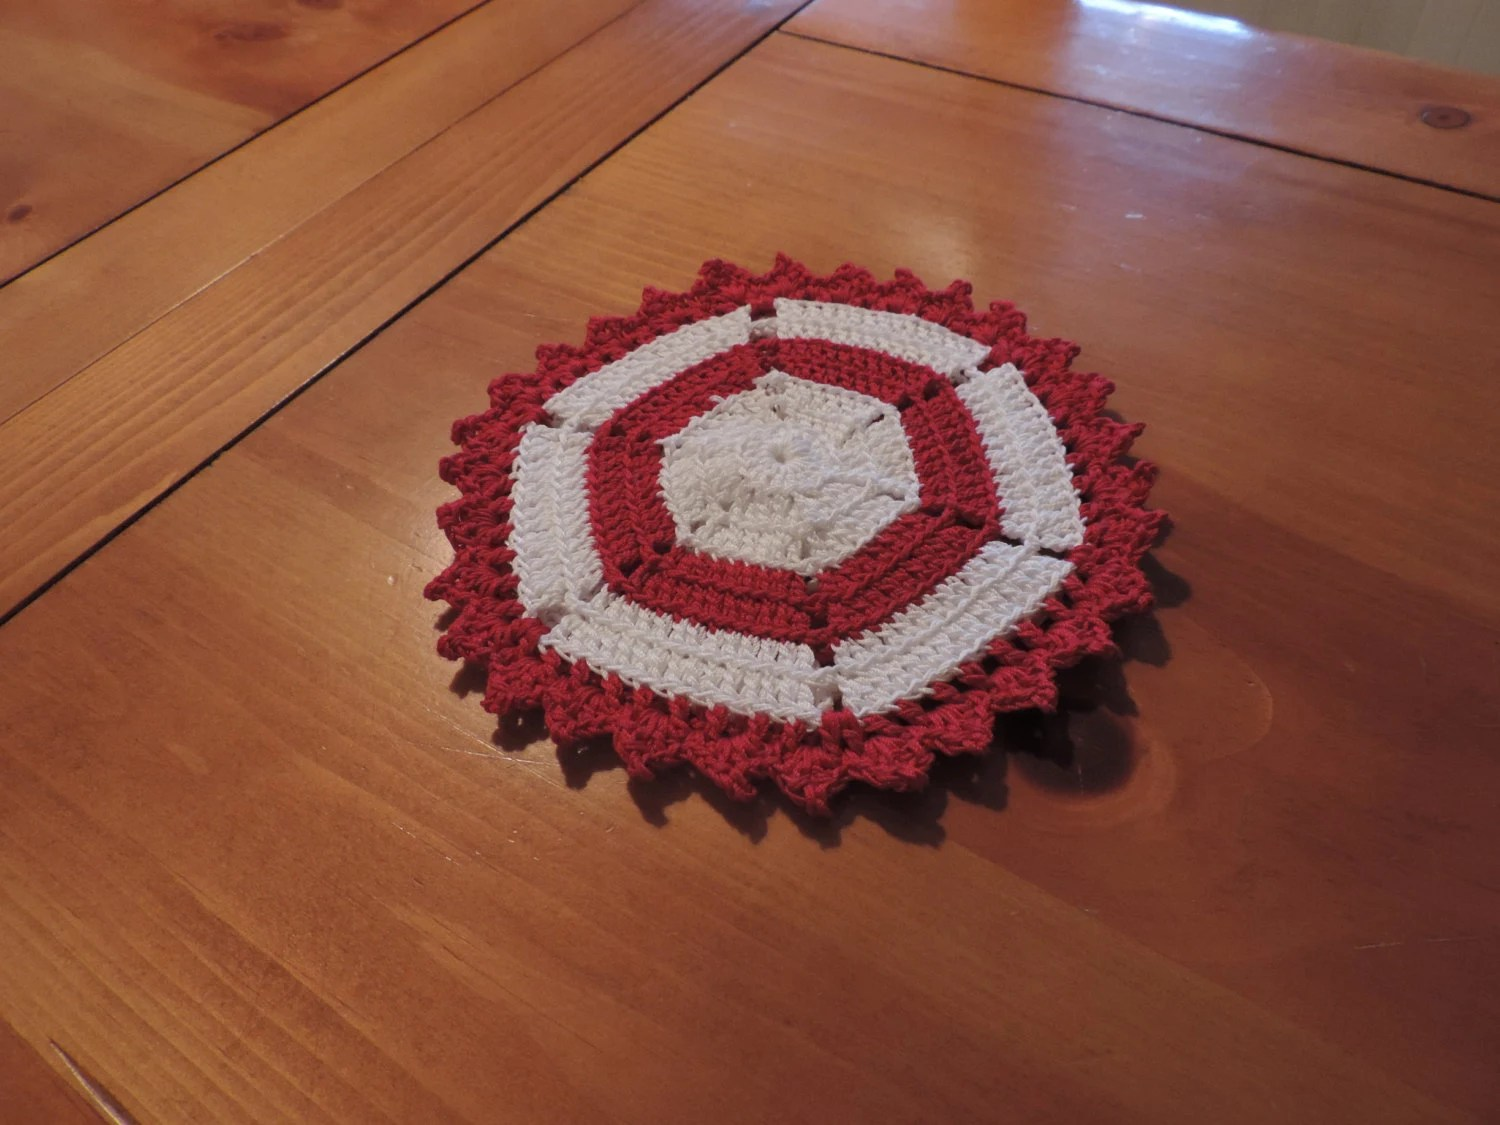 New Vintage Style Red and White Crocheted Hexagon Potholder